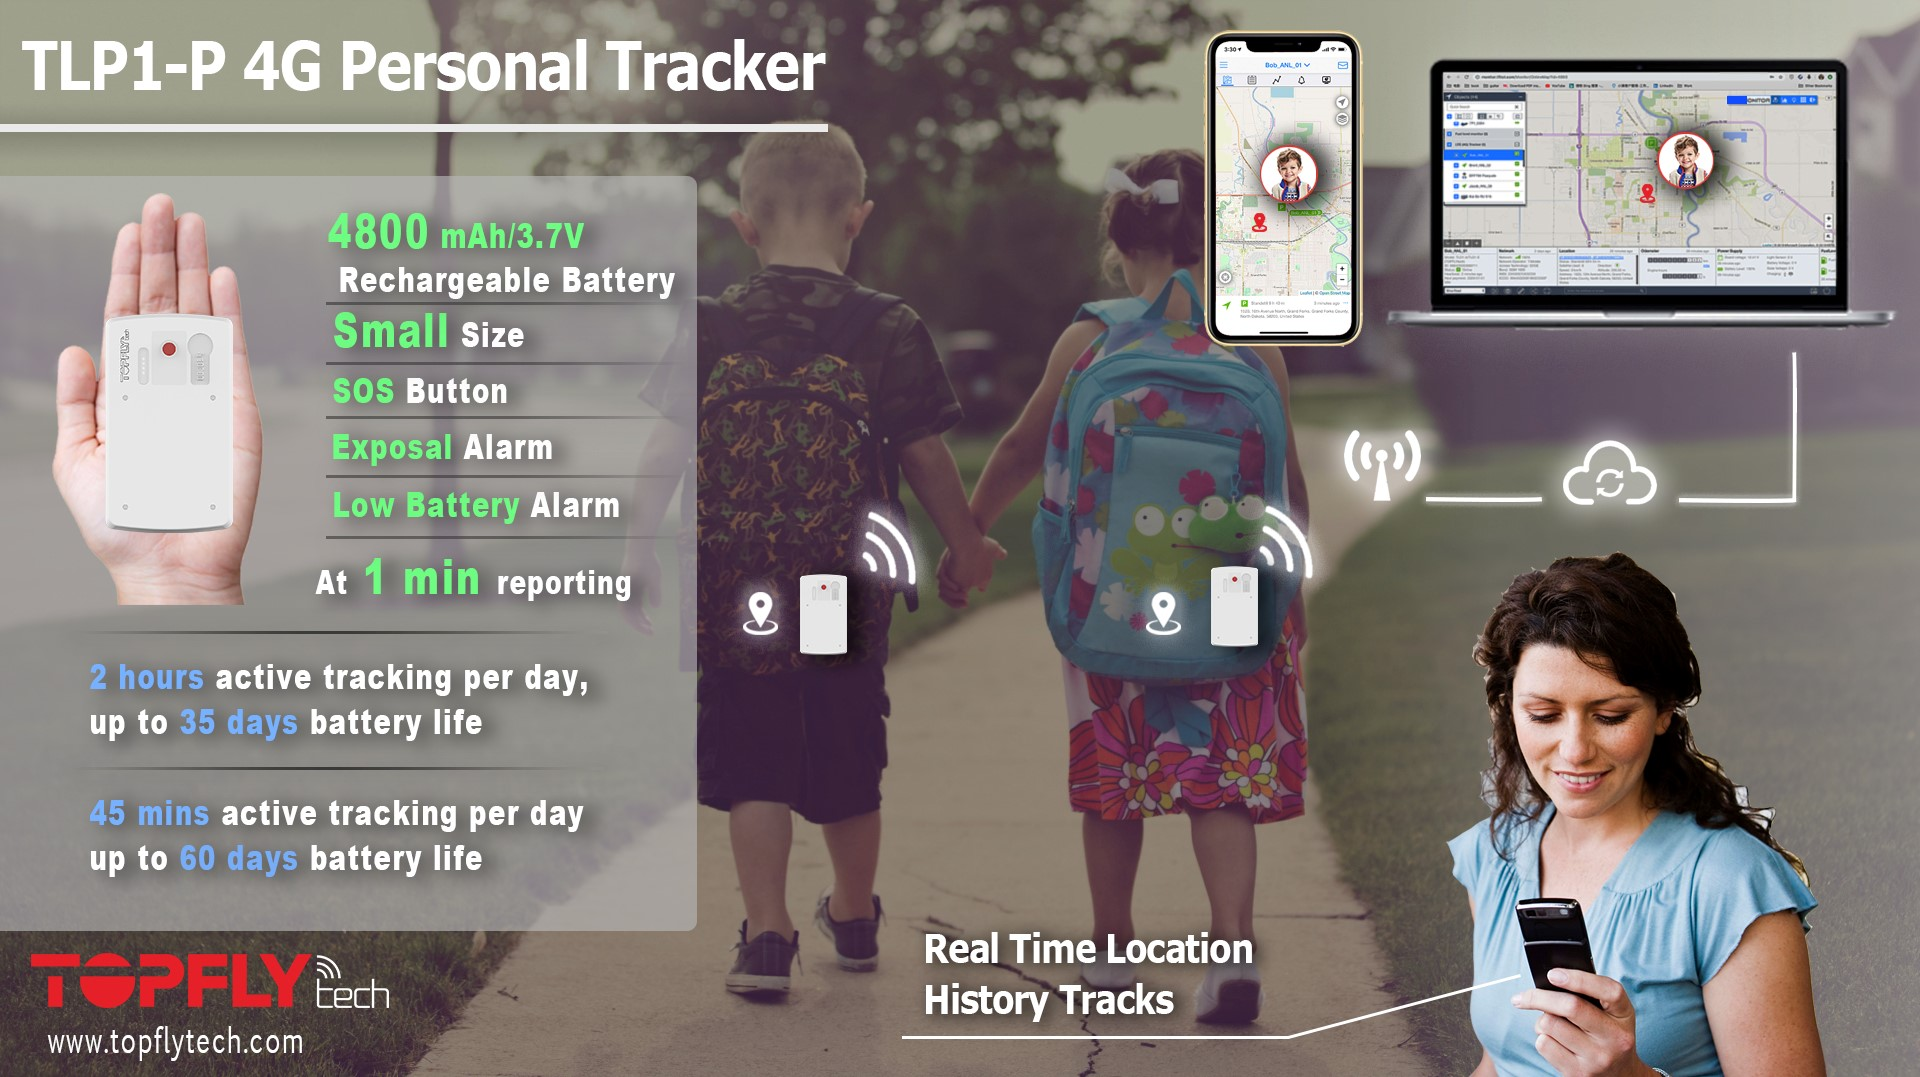 TLP1-P 4G Personal Tracker